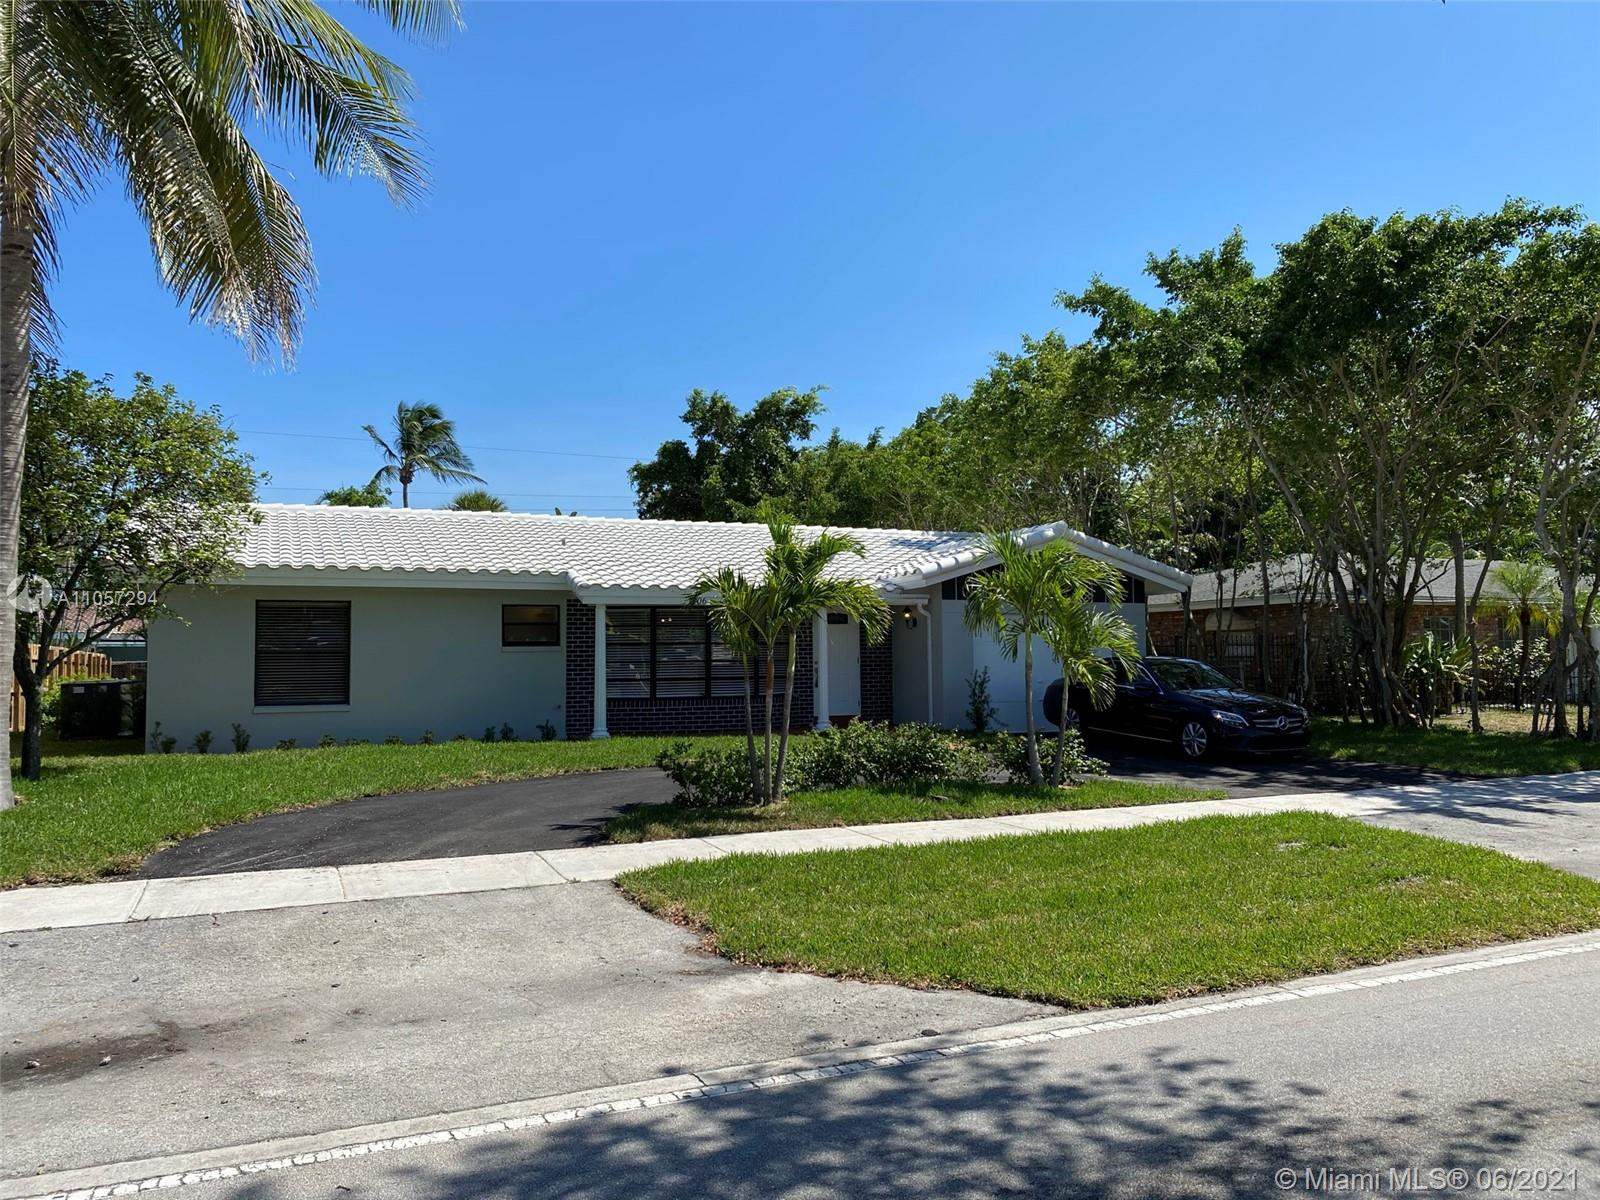 Coral Isles, 1406 NE 62nd St, Fort Lauderdale, Florida 33334